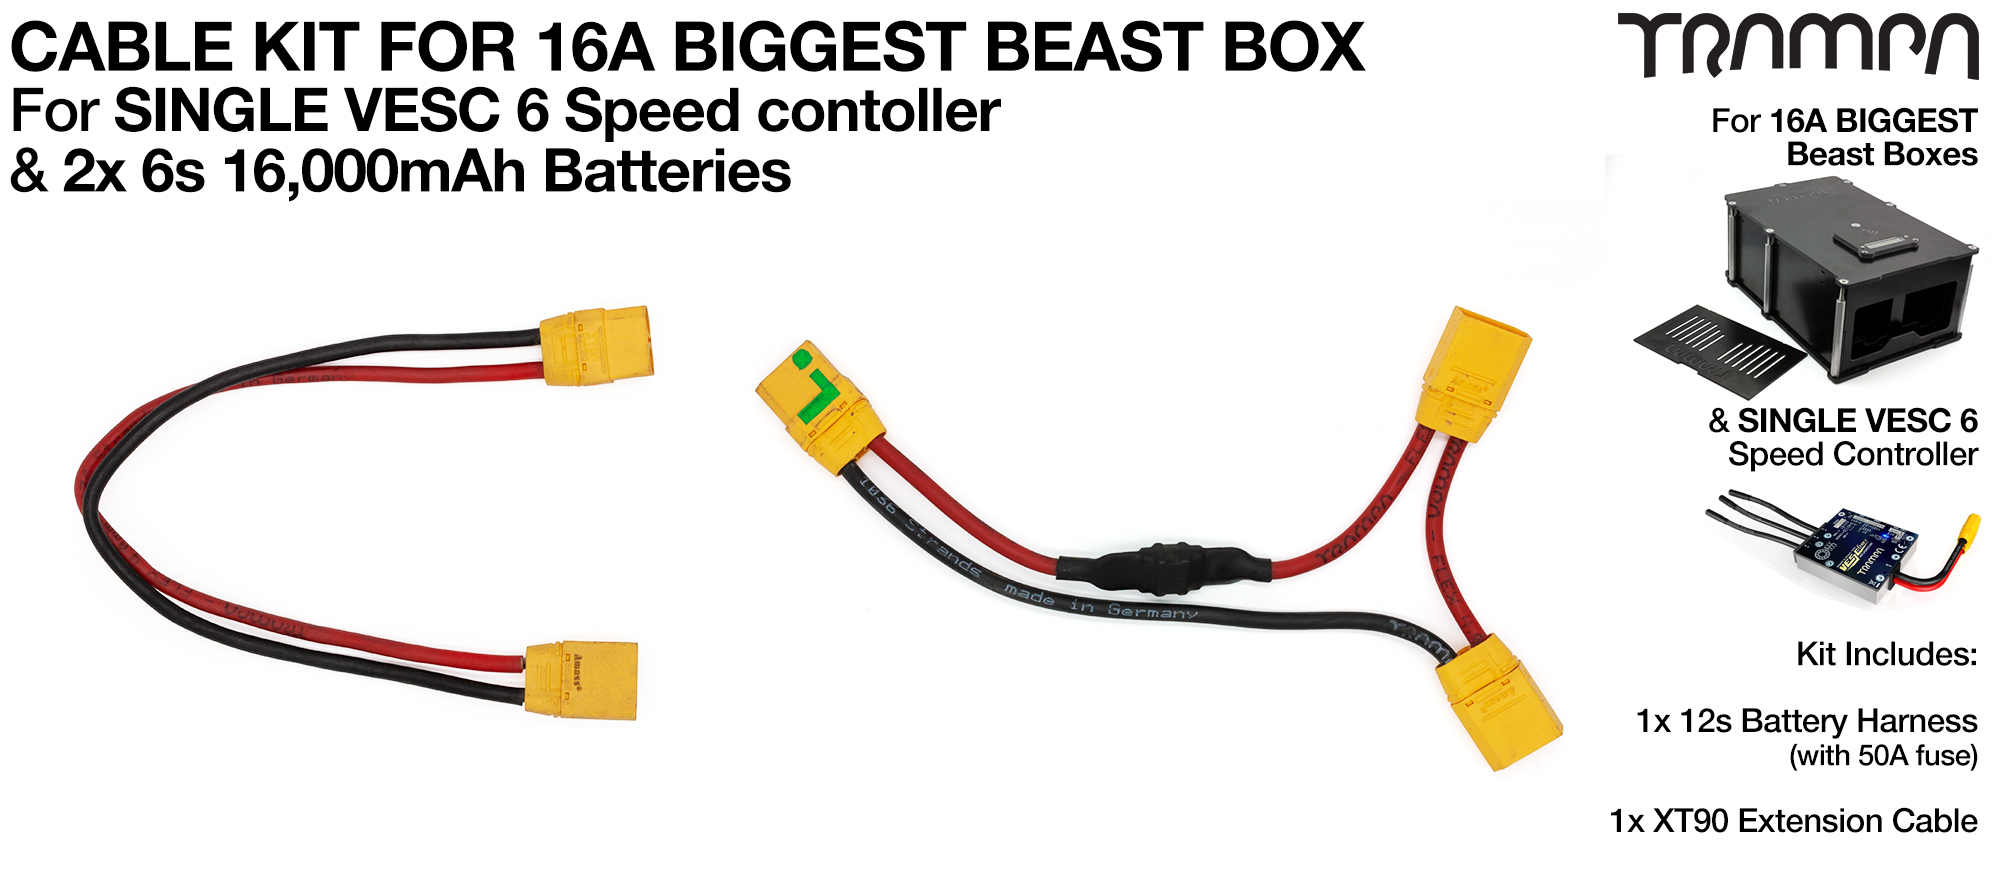 Complete 16A BIGGEST BEAST Box 12s1p Cable Kit with 50 Amp Fuse all soldered & heat sealed ready for plug & play use TRAMPA Stamped 1036 strand Silicon coated Cables!